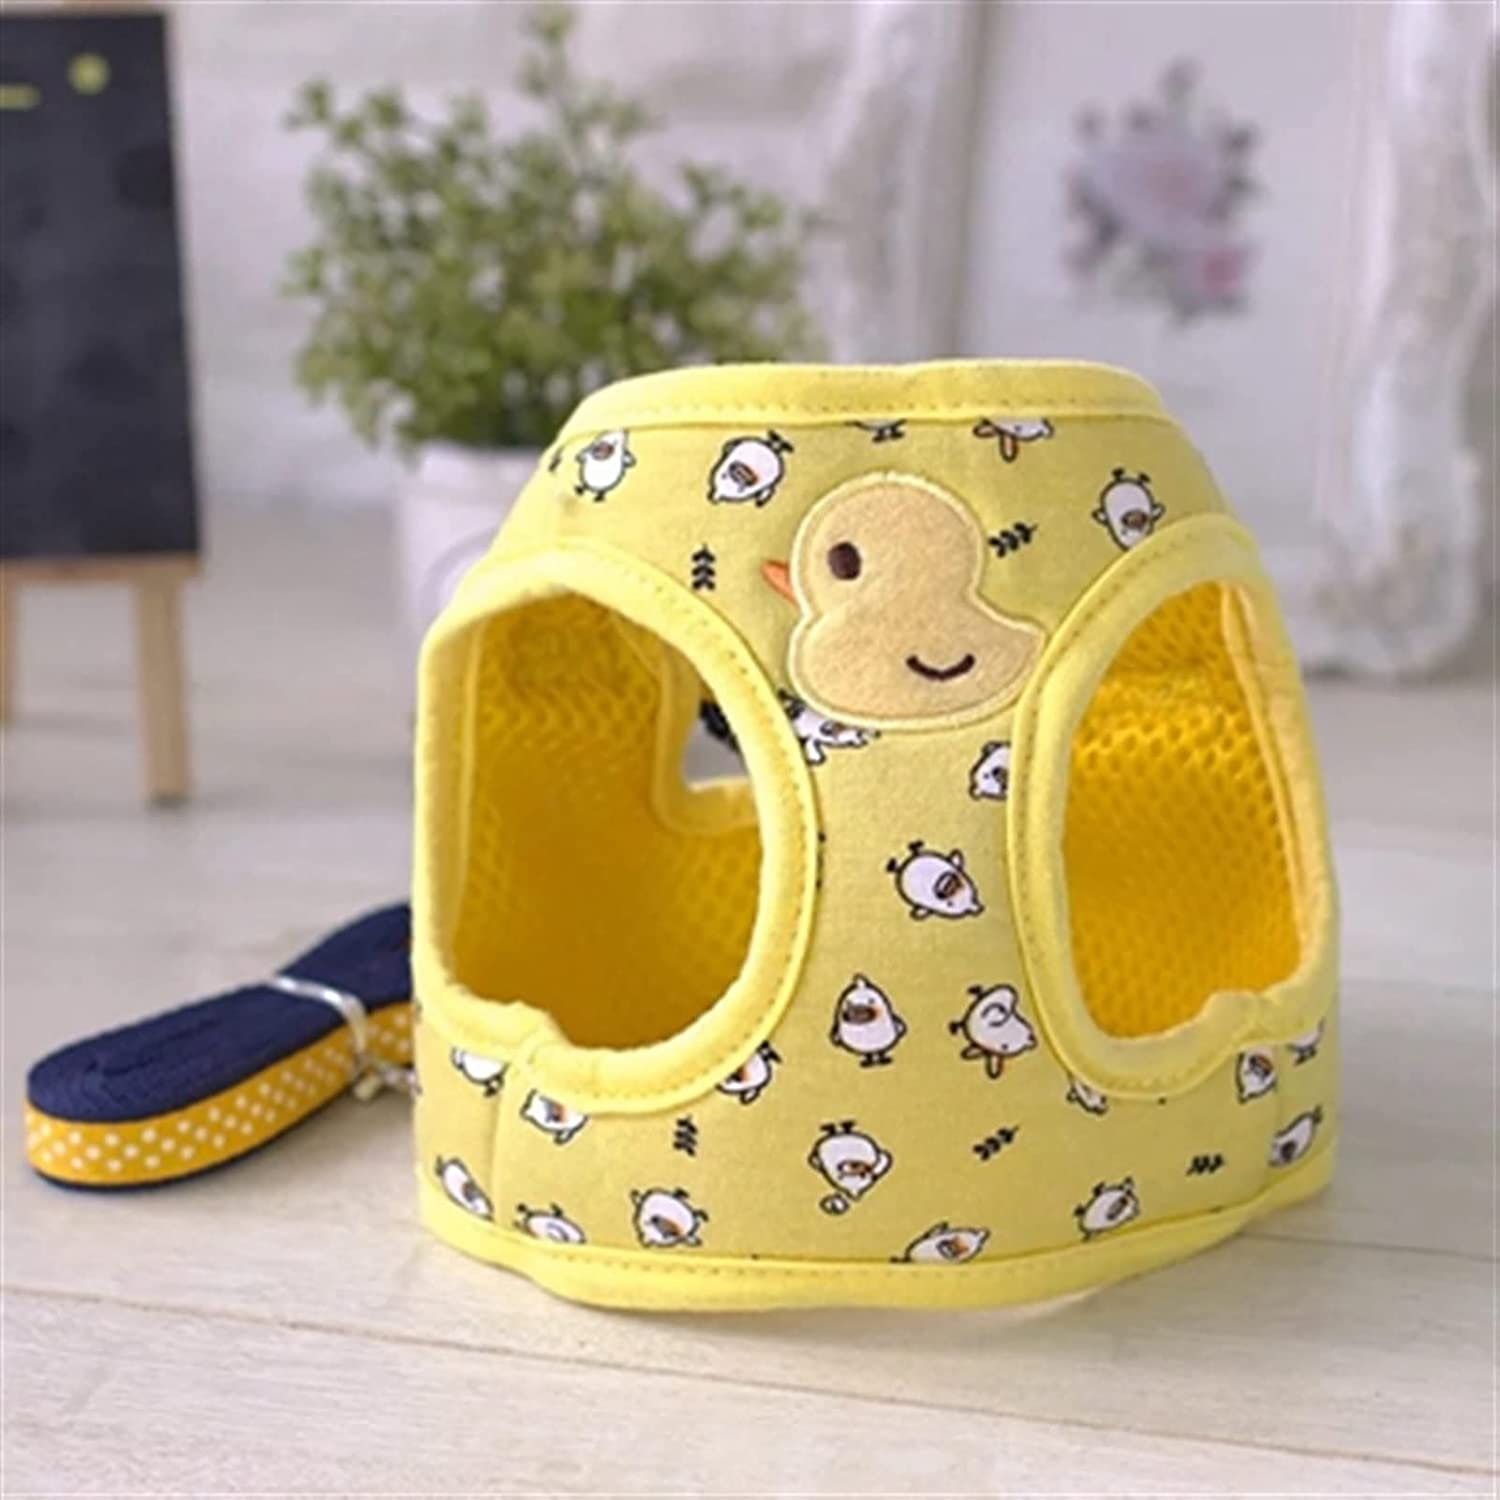 LUBINGT Pet Accessories Cute Dog Harness S Reservation Blue Yellow Mail order Vest Pink